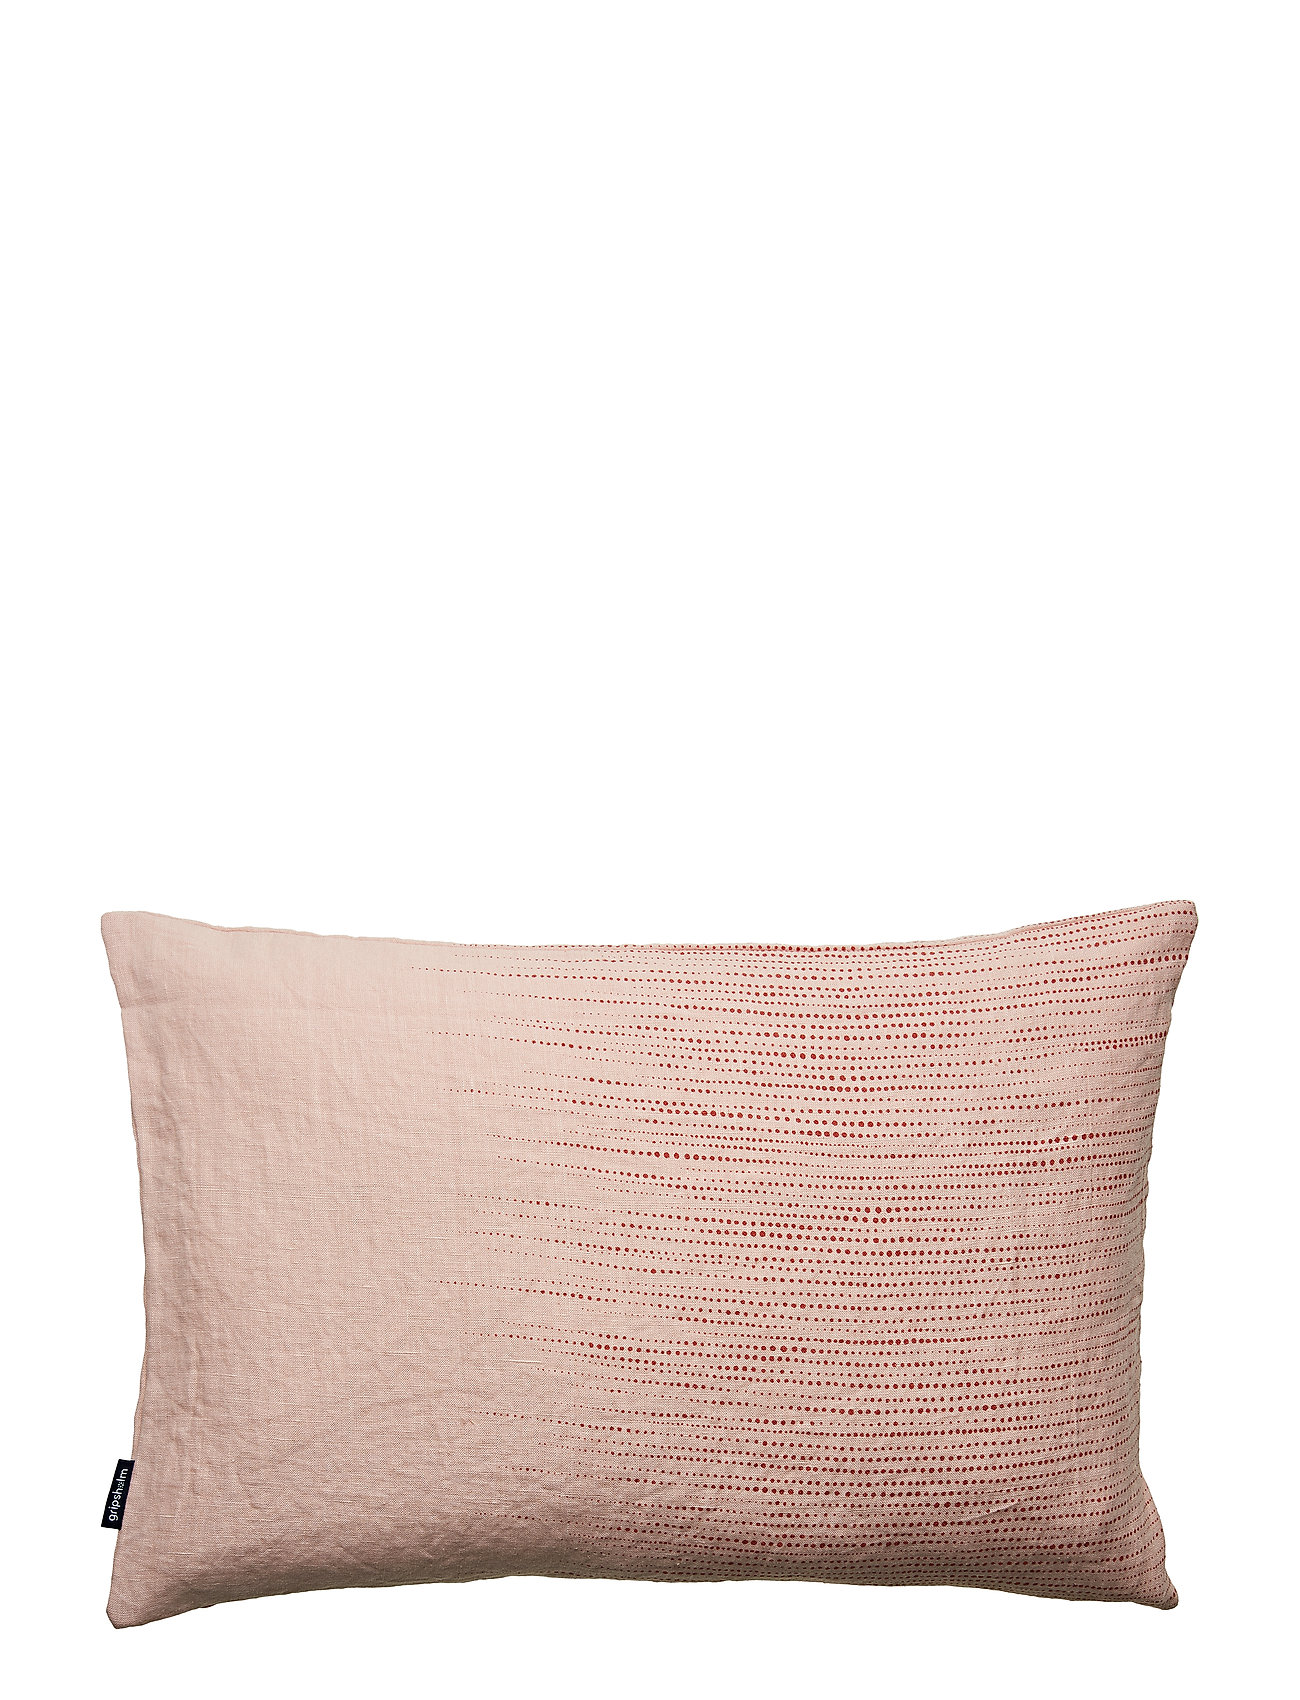 Gripsholm CUSHION COVER LEO - MISTY ROSE